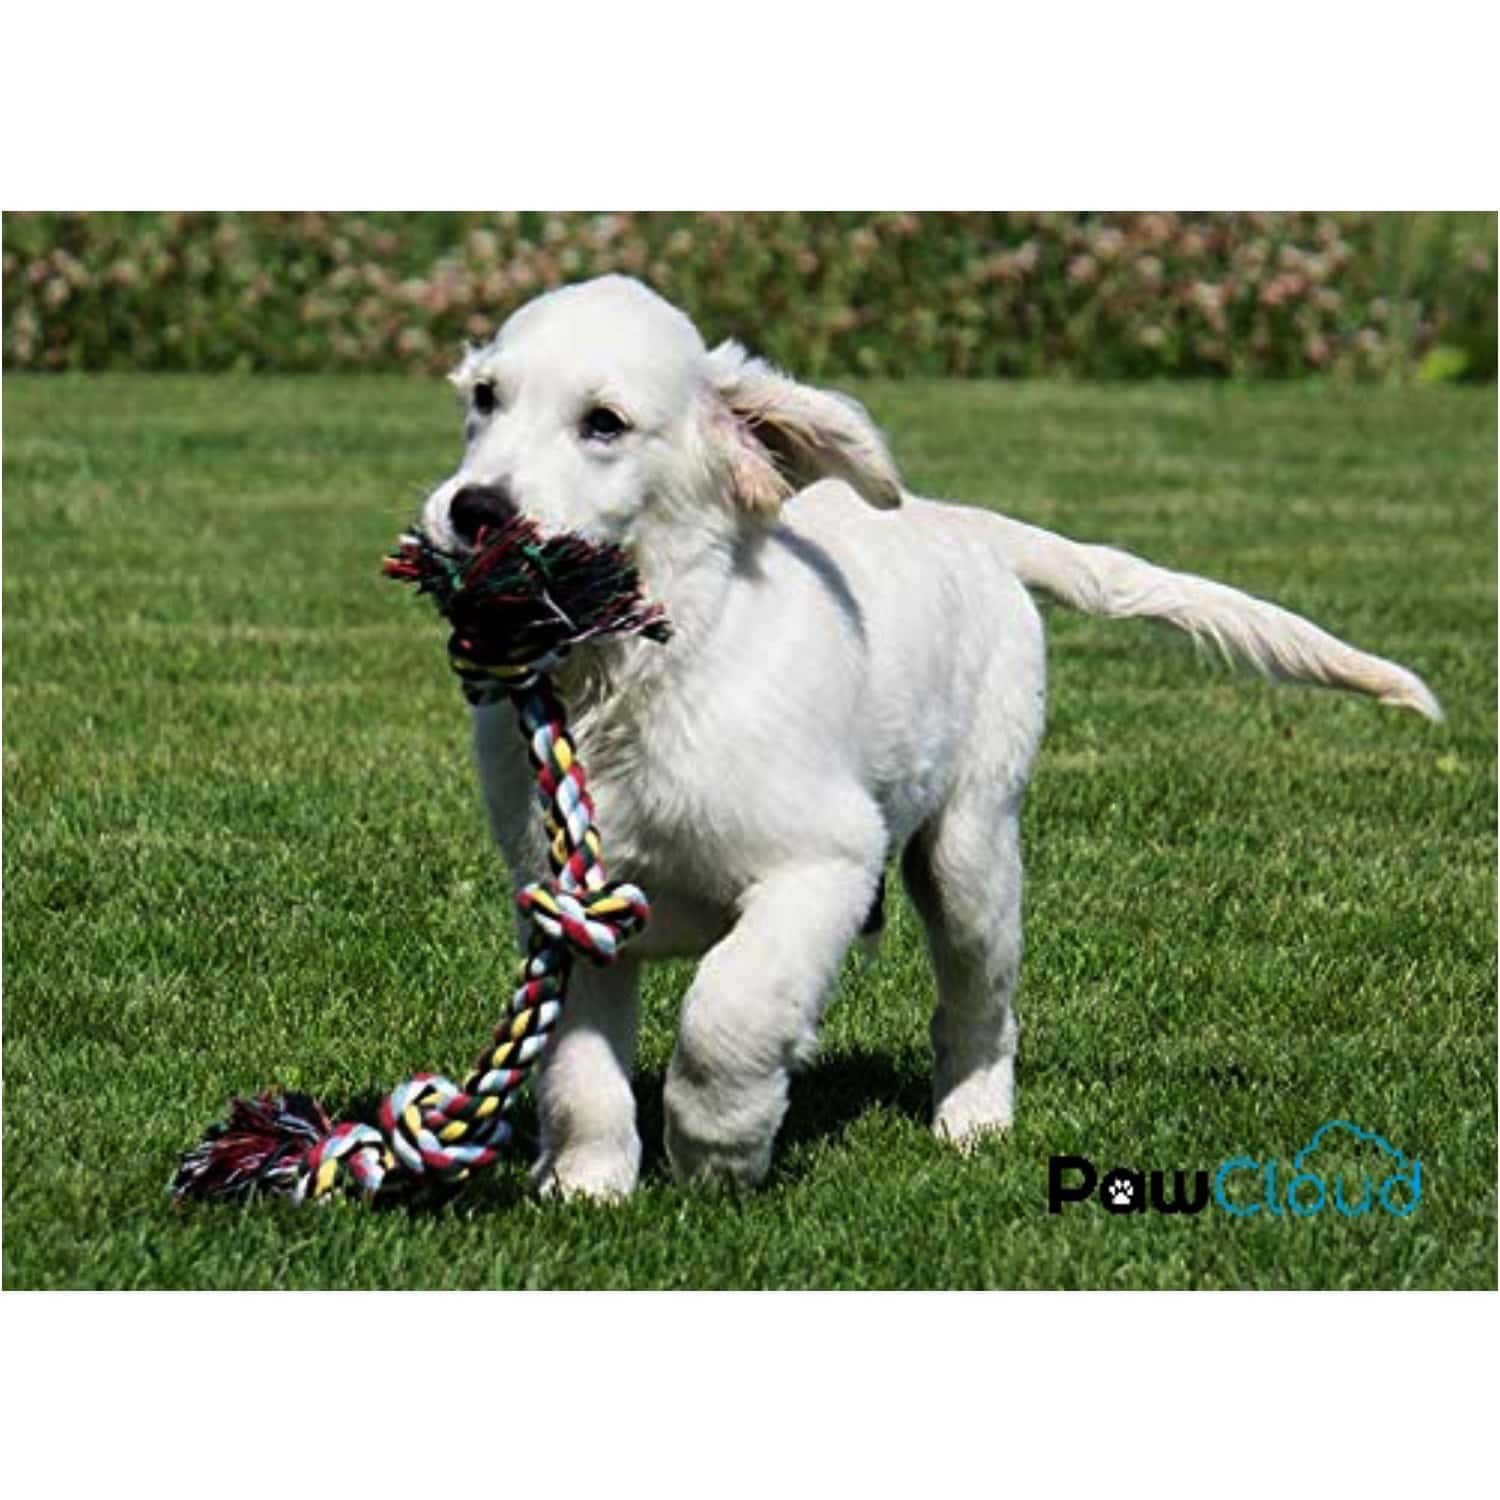 Pawcloud 3 Knots Cotton Rope Dog Toy, Large - 16 Inch, Interactive Teething & Chewing Multicolor Toy